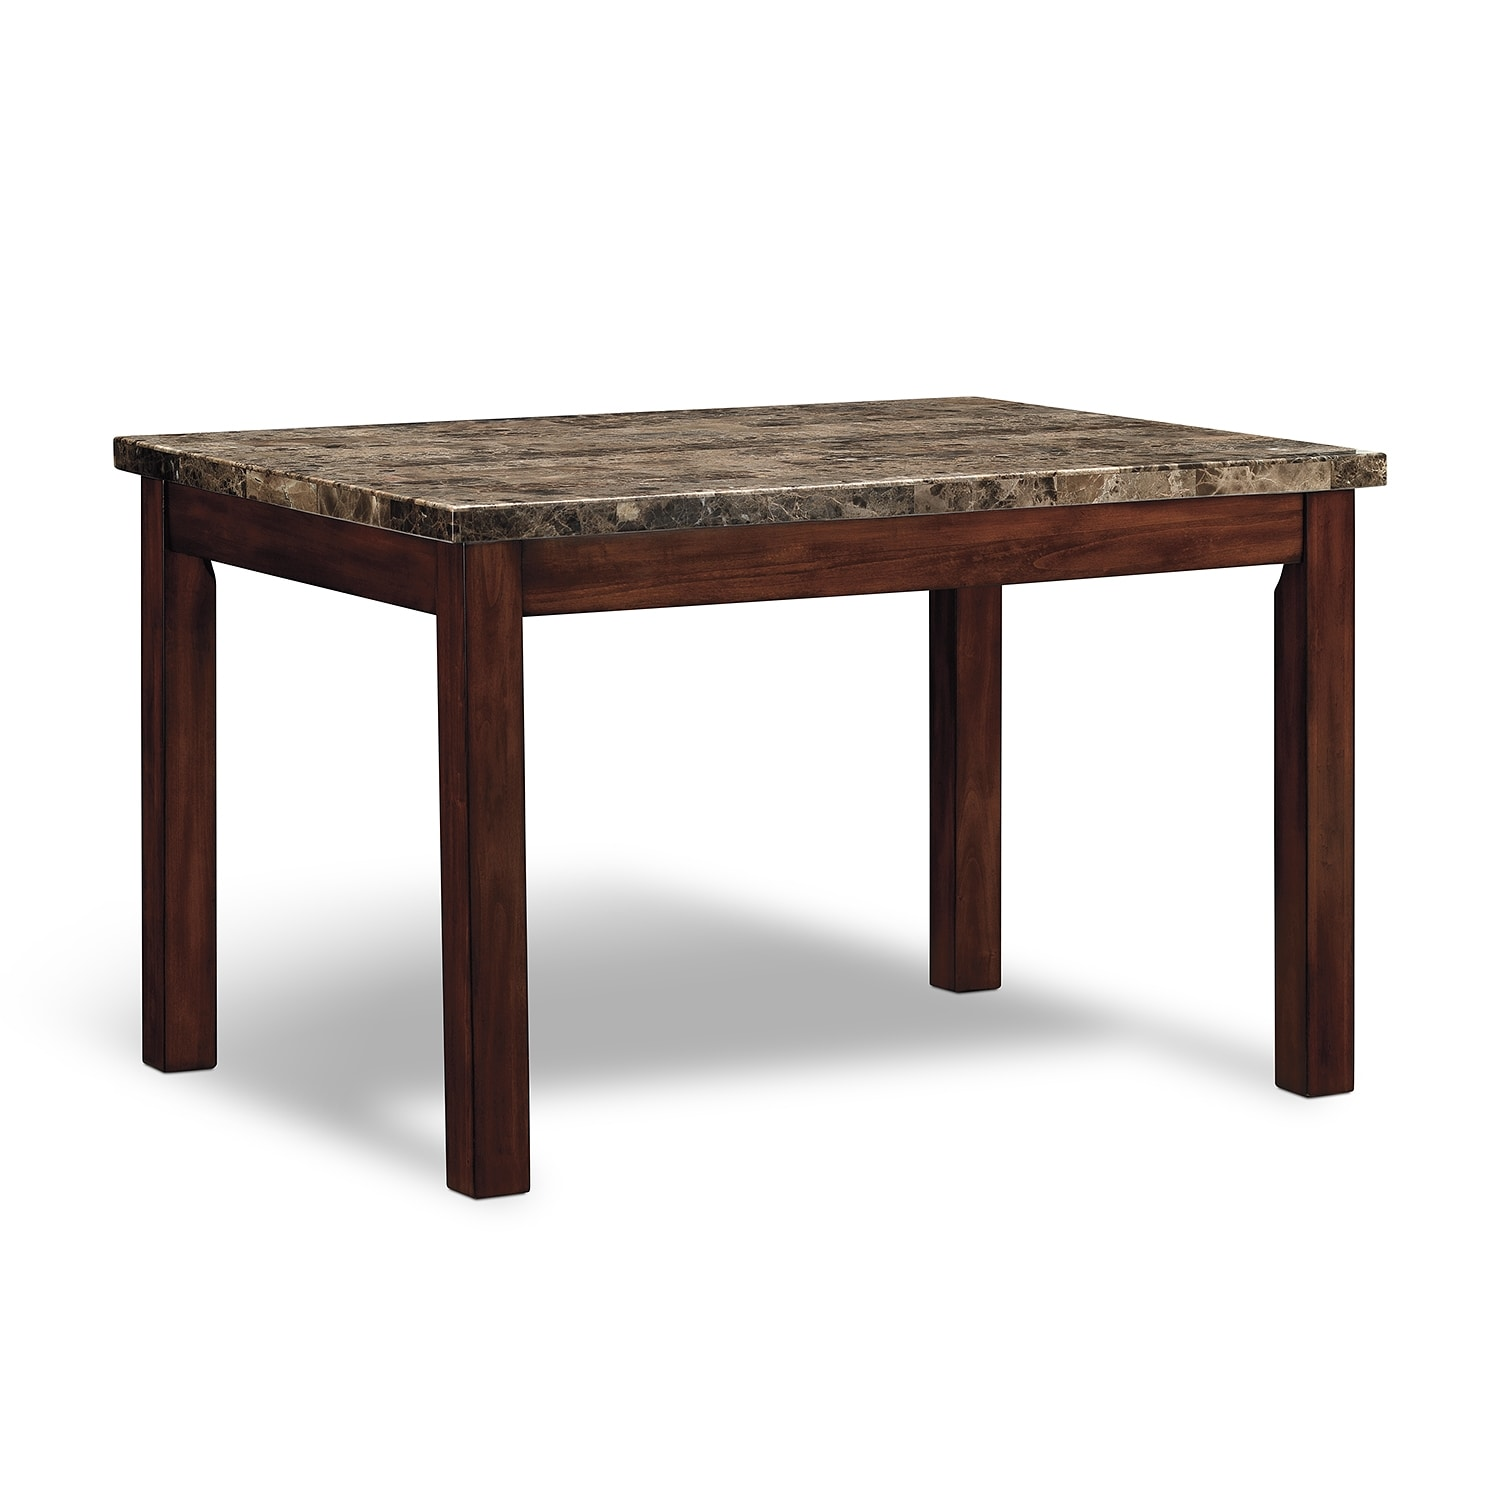 Cornerstone dining room table value city furniture for Dining room tables value city